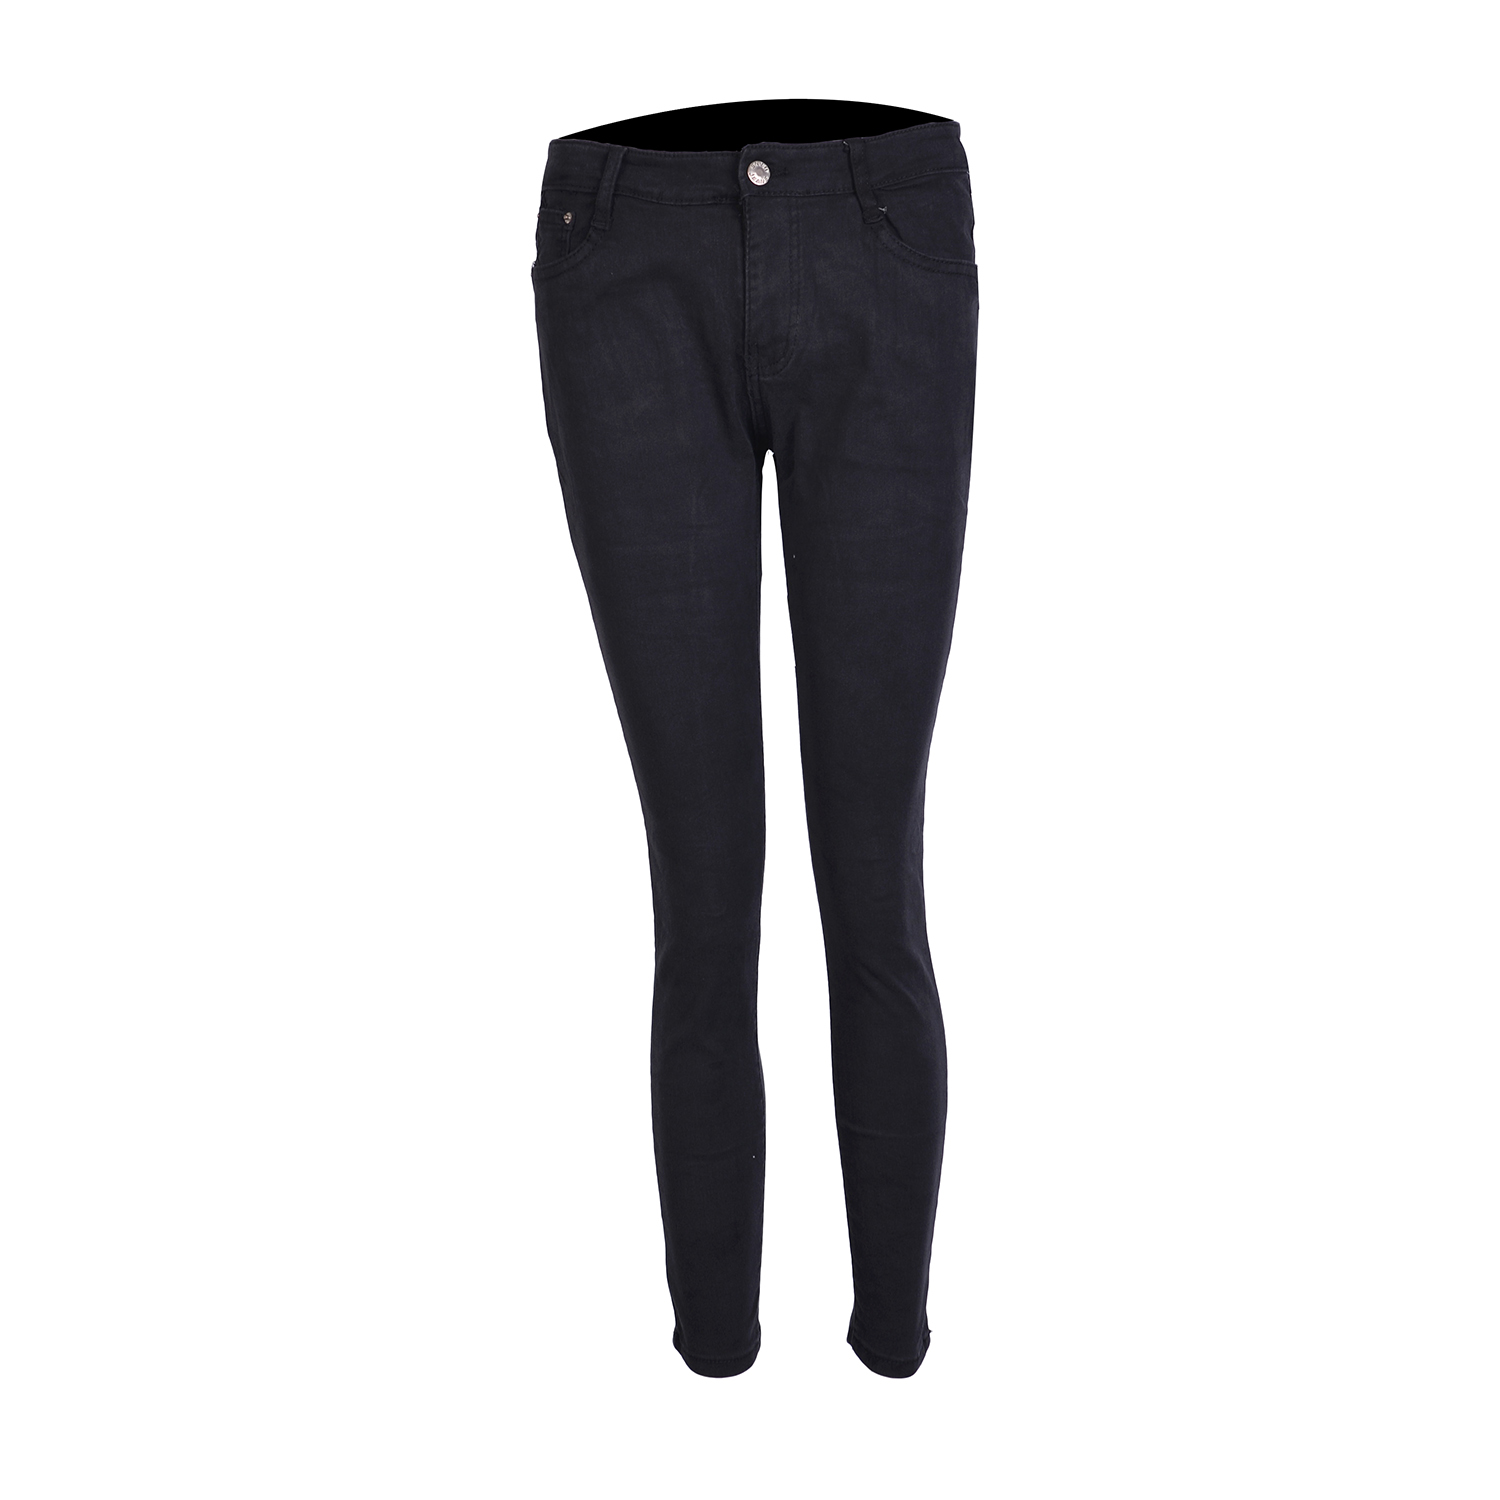 Ladies Women Plain Black Skinny Jeans Pants For Her Stretchable Lazada Ph